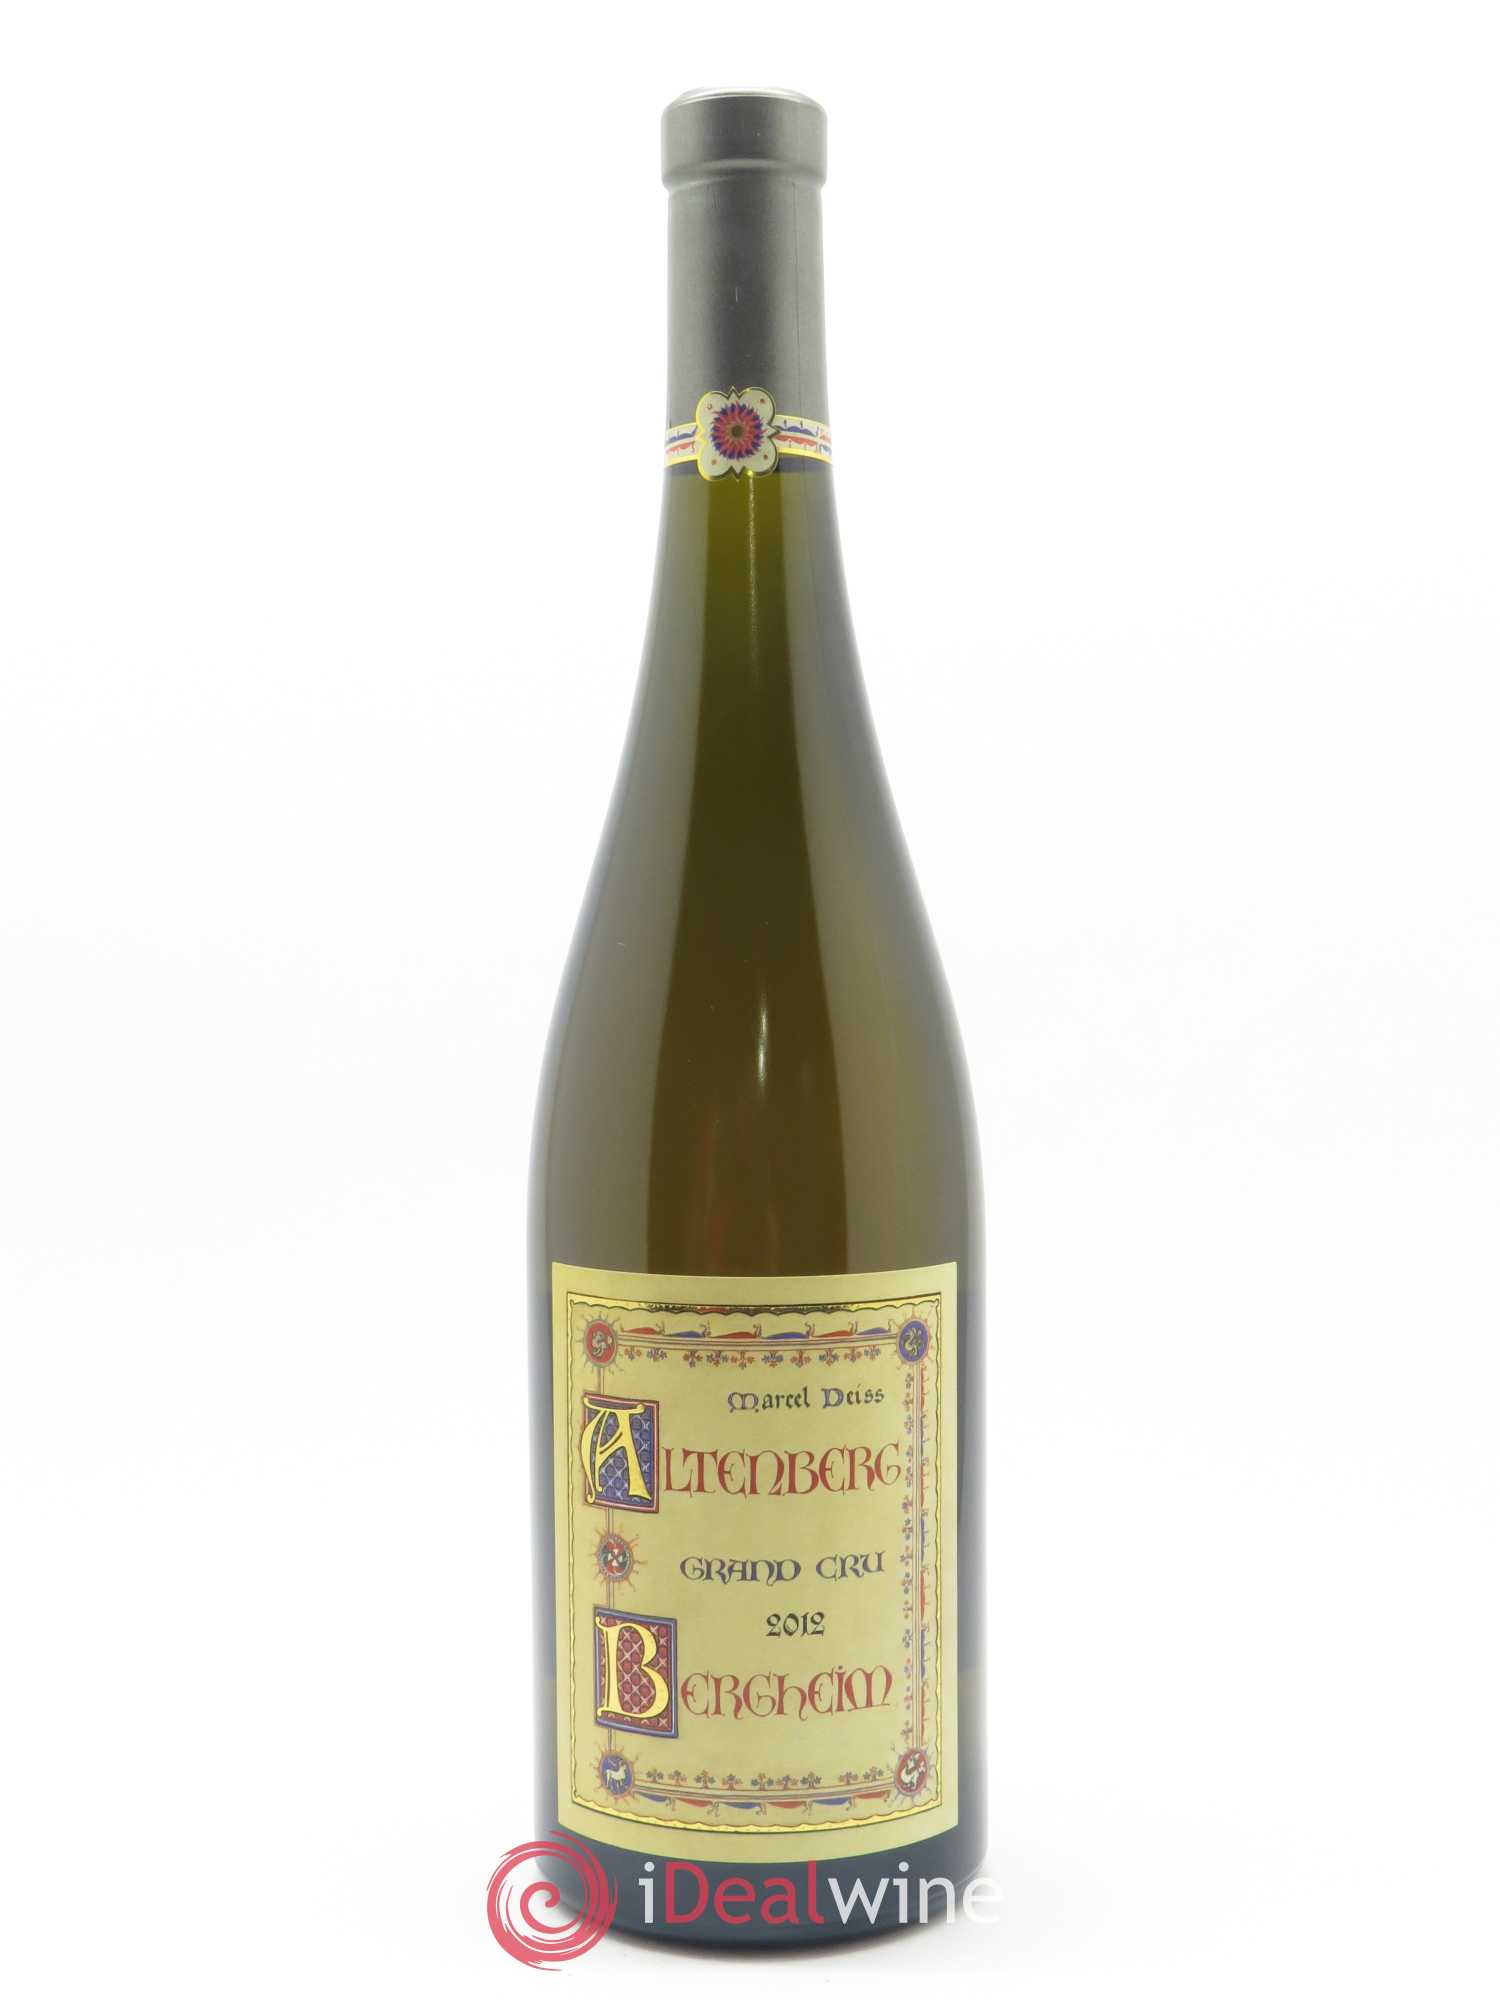 Altenberg de Bergheim Grand Cru Marcel Deiss (Domaine)  2012 - Lot of 1 Bottle